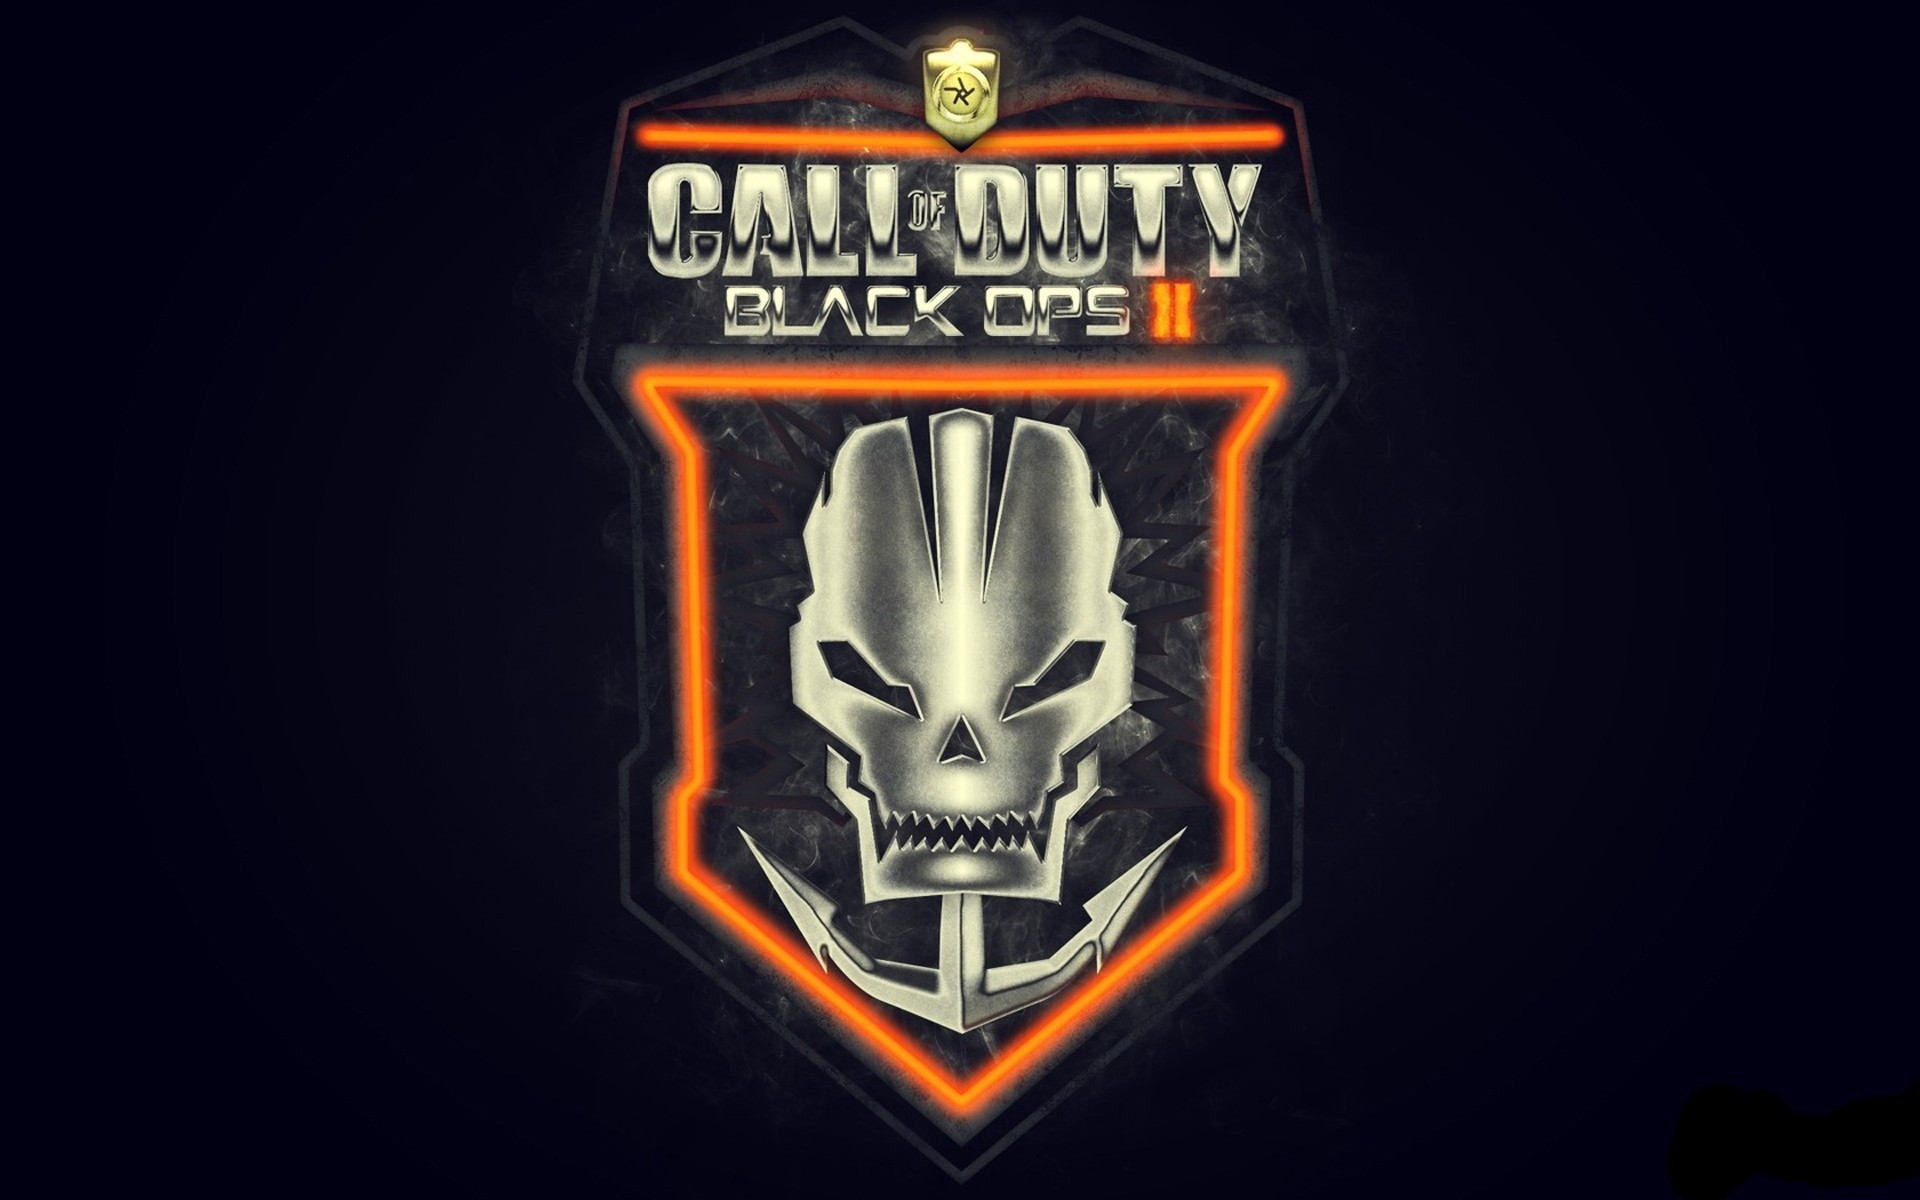 Call Of Duty: Black Ops Wallpaper Pack file – Mod DB | Adorable Wallpapers  | Pinterest | Black ops and Wallpaper